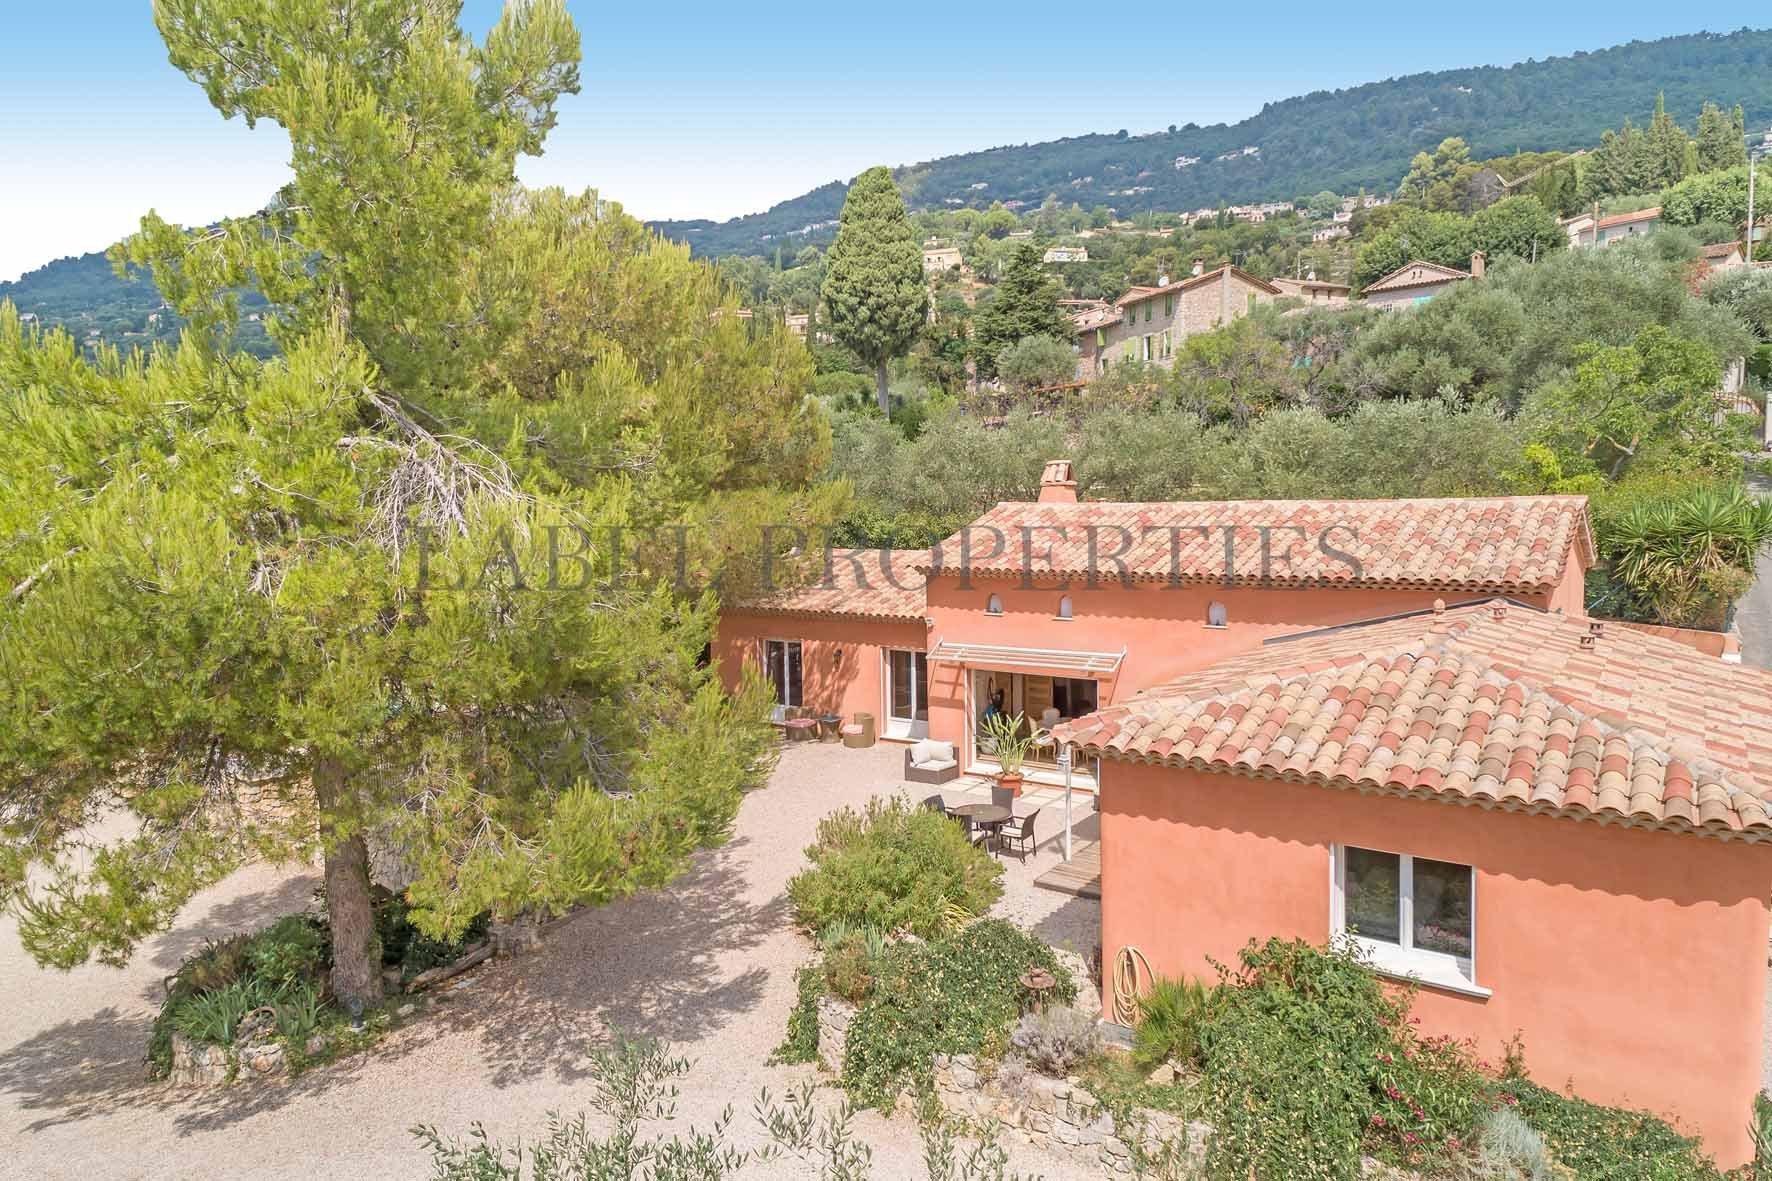 Close to Mougins (10 minutes)